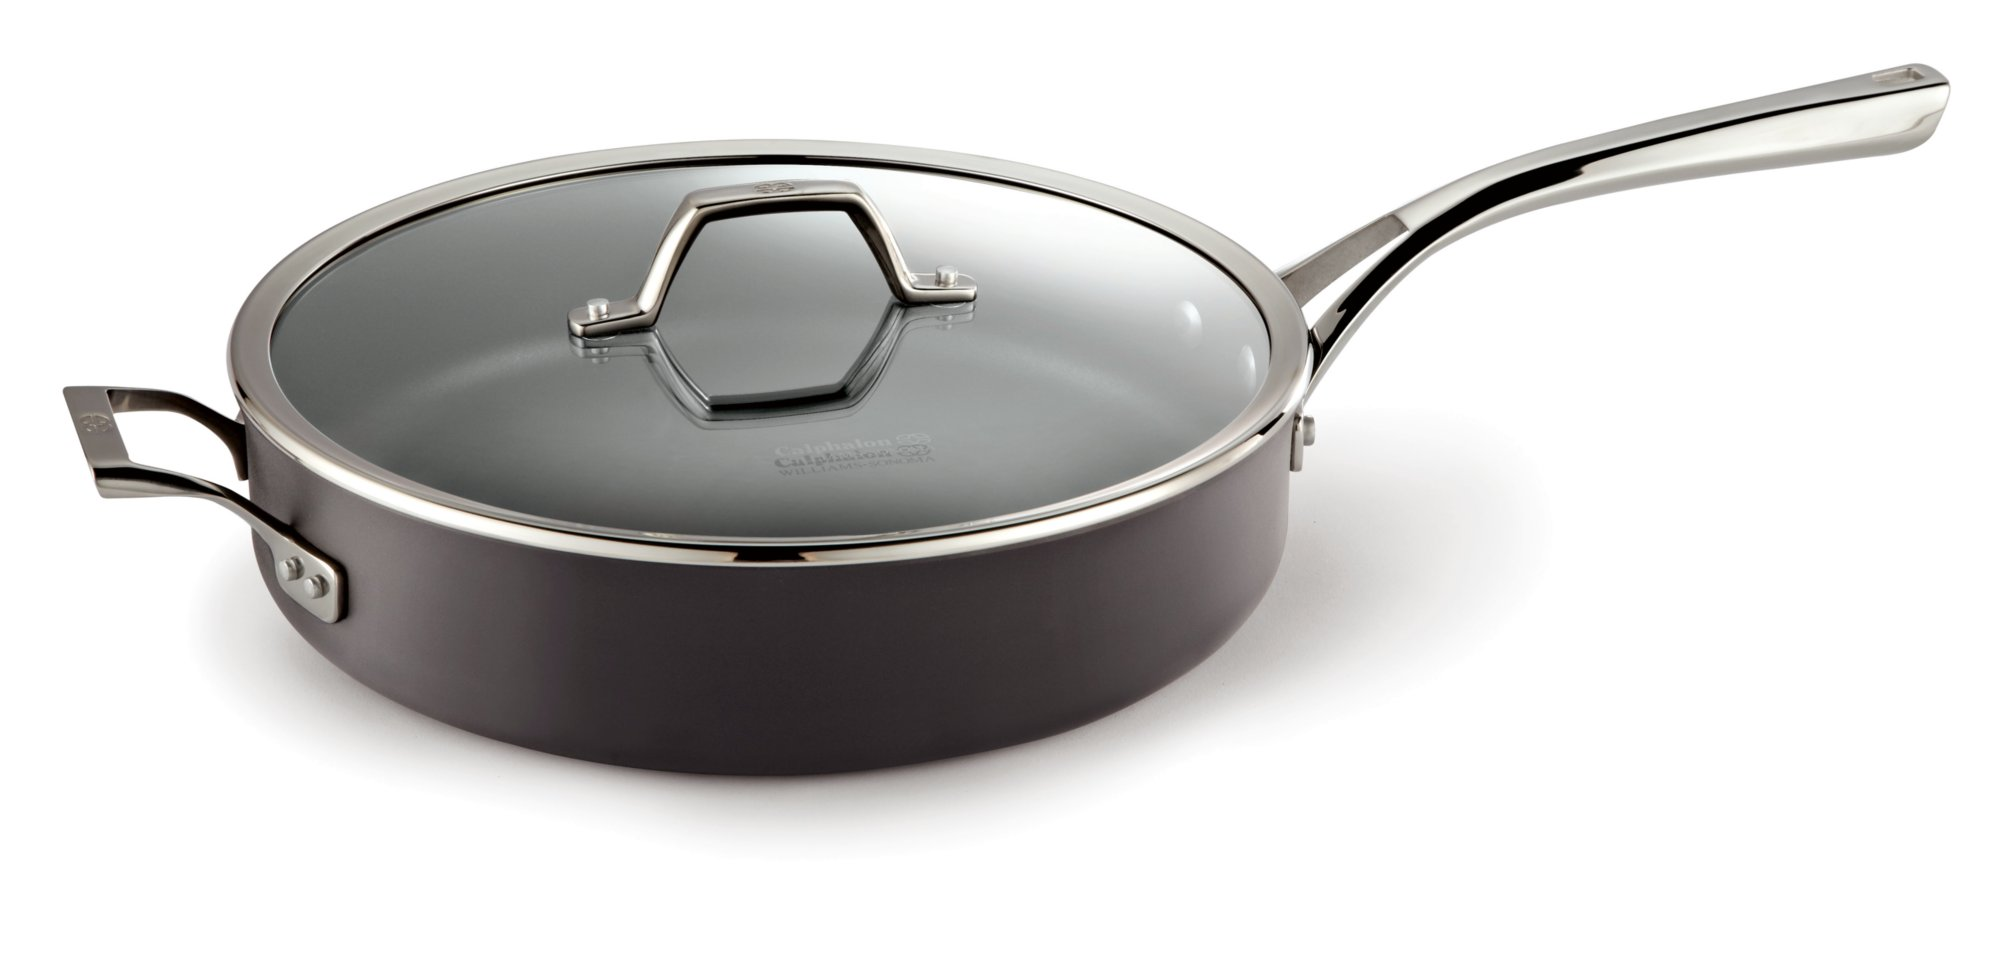 Calphalon Williams-Sonoma Elite Nonstick 6-qt. Saute Pan with Cover